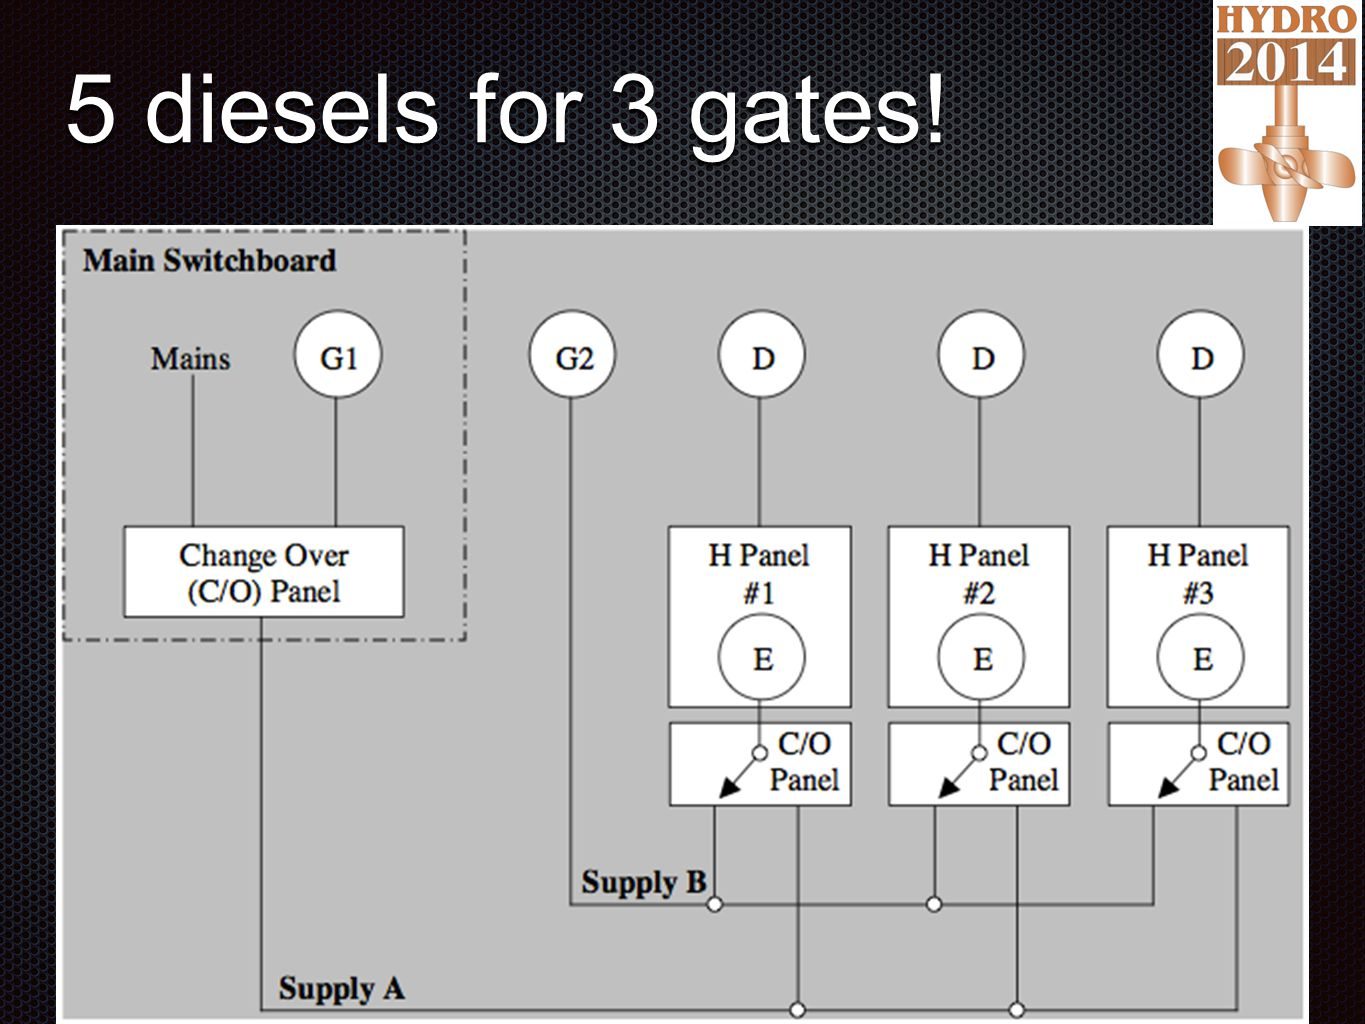 5 diesels for 3 gates!